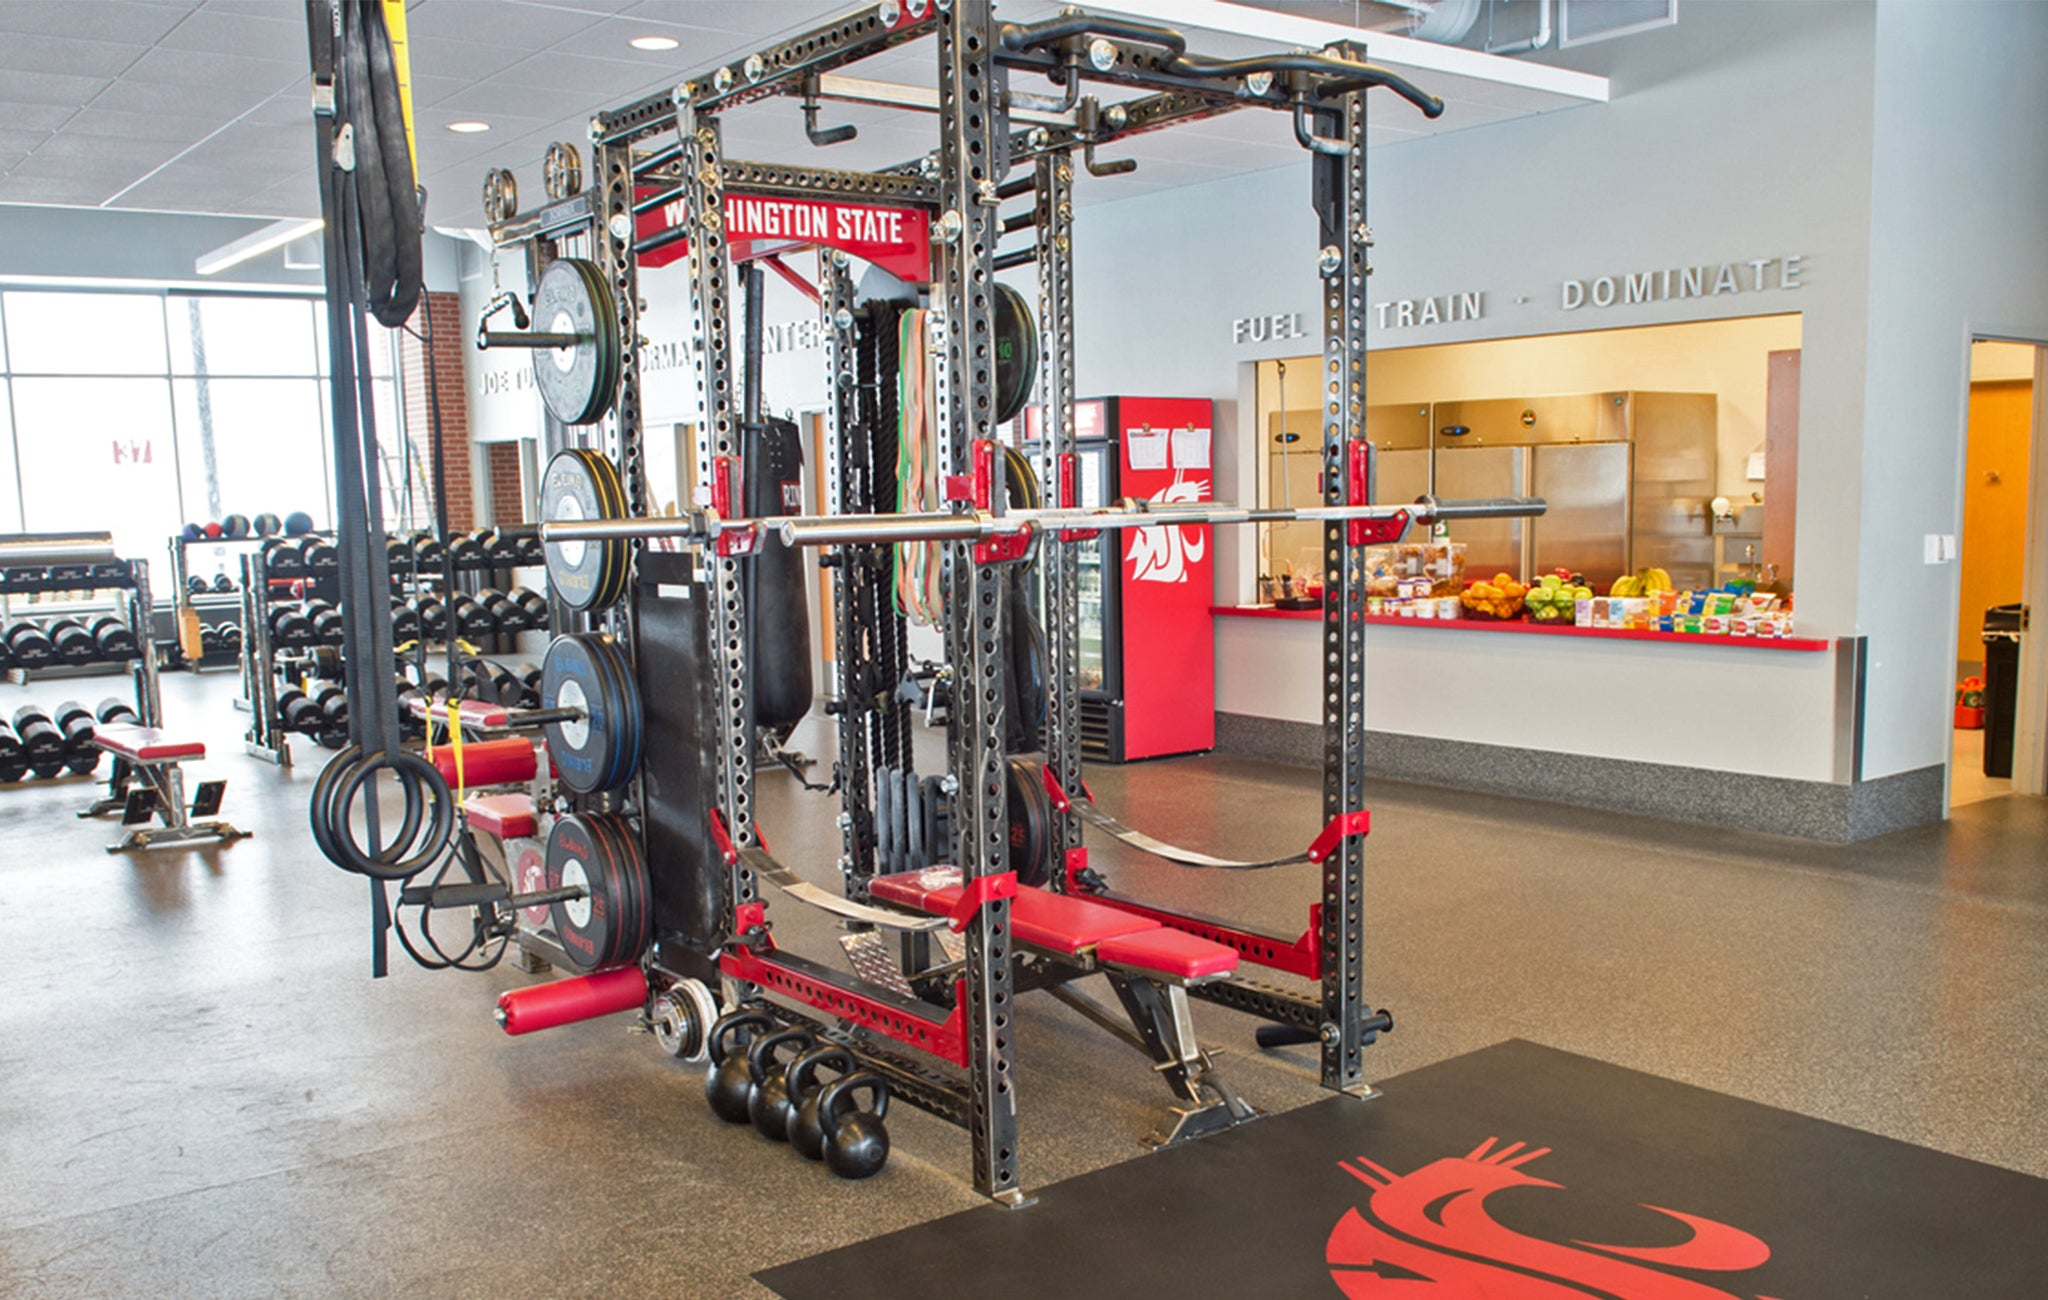 Washington State weight room